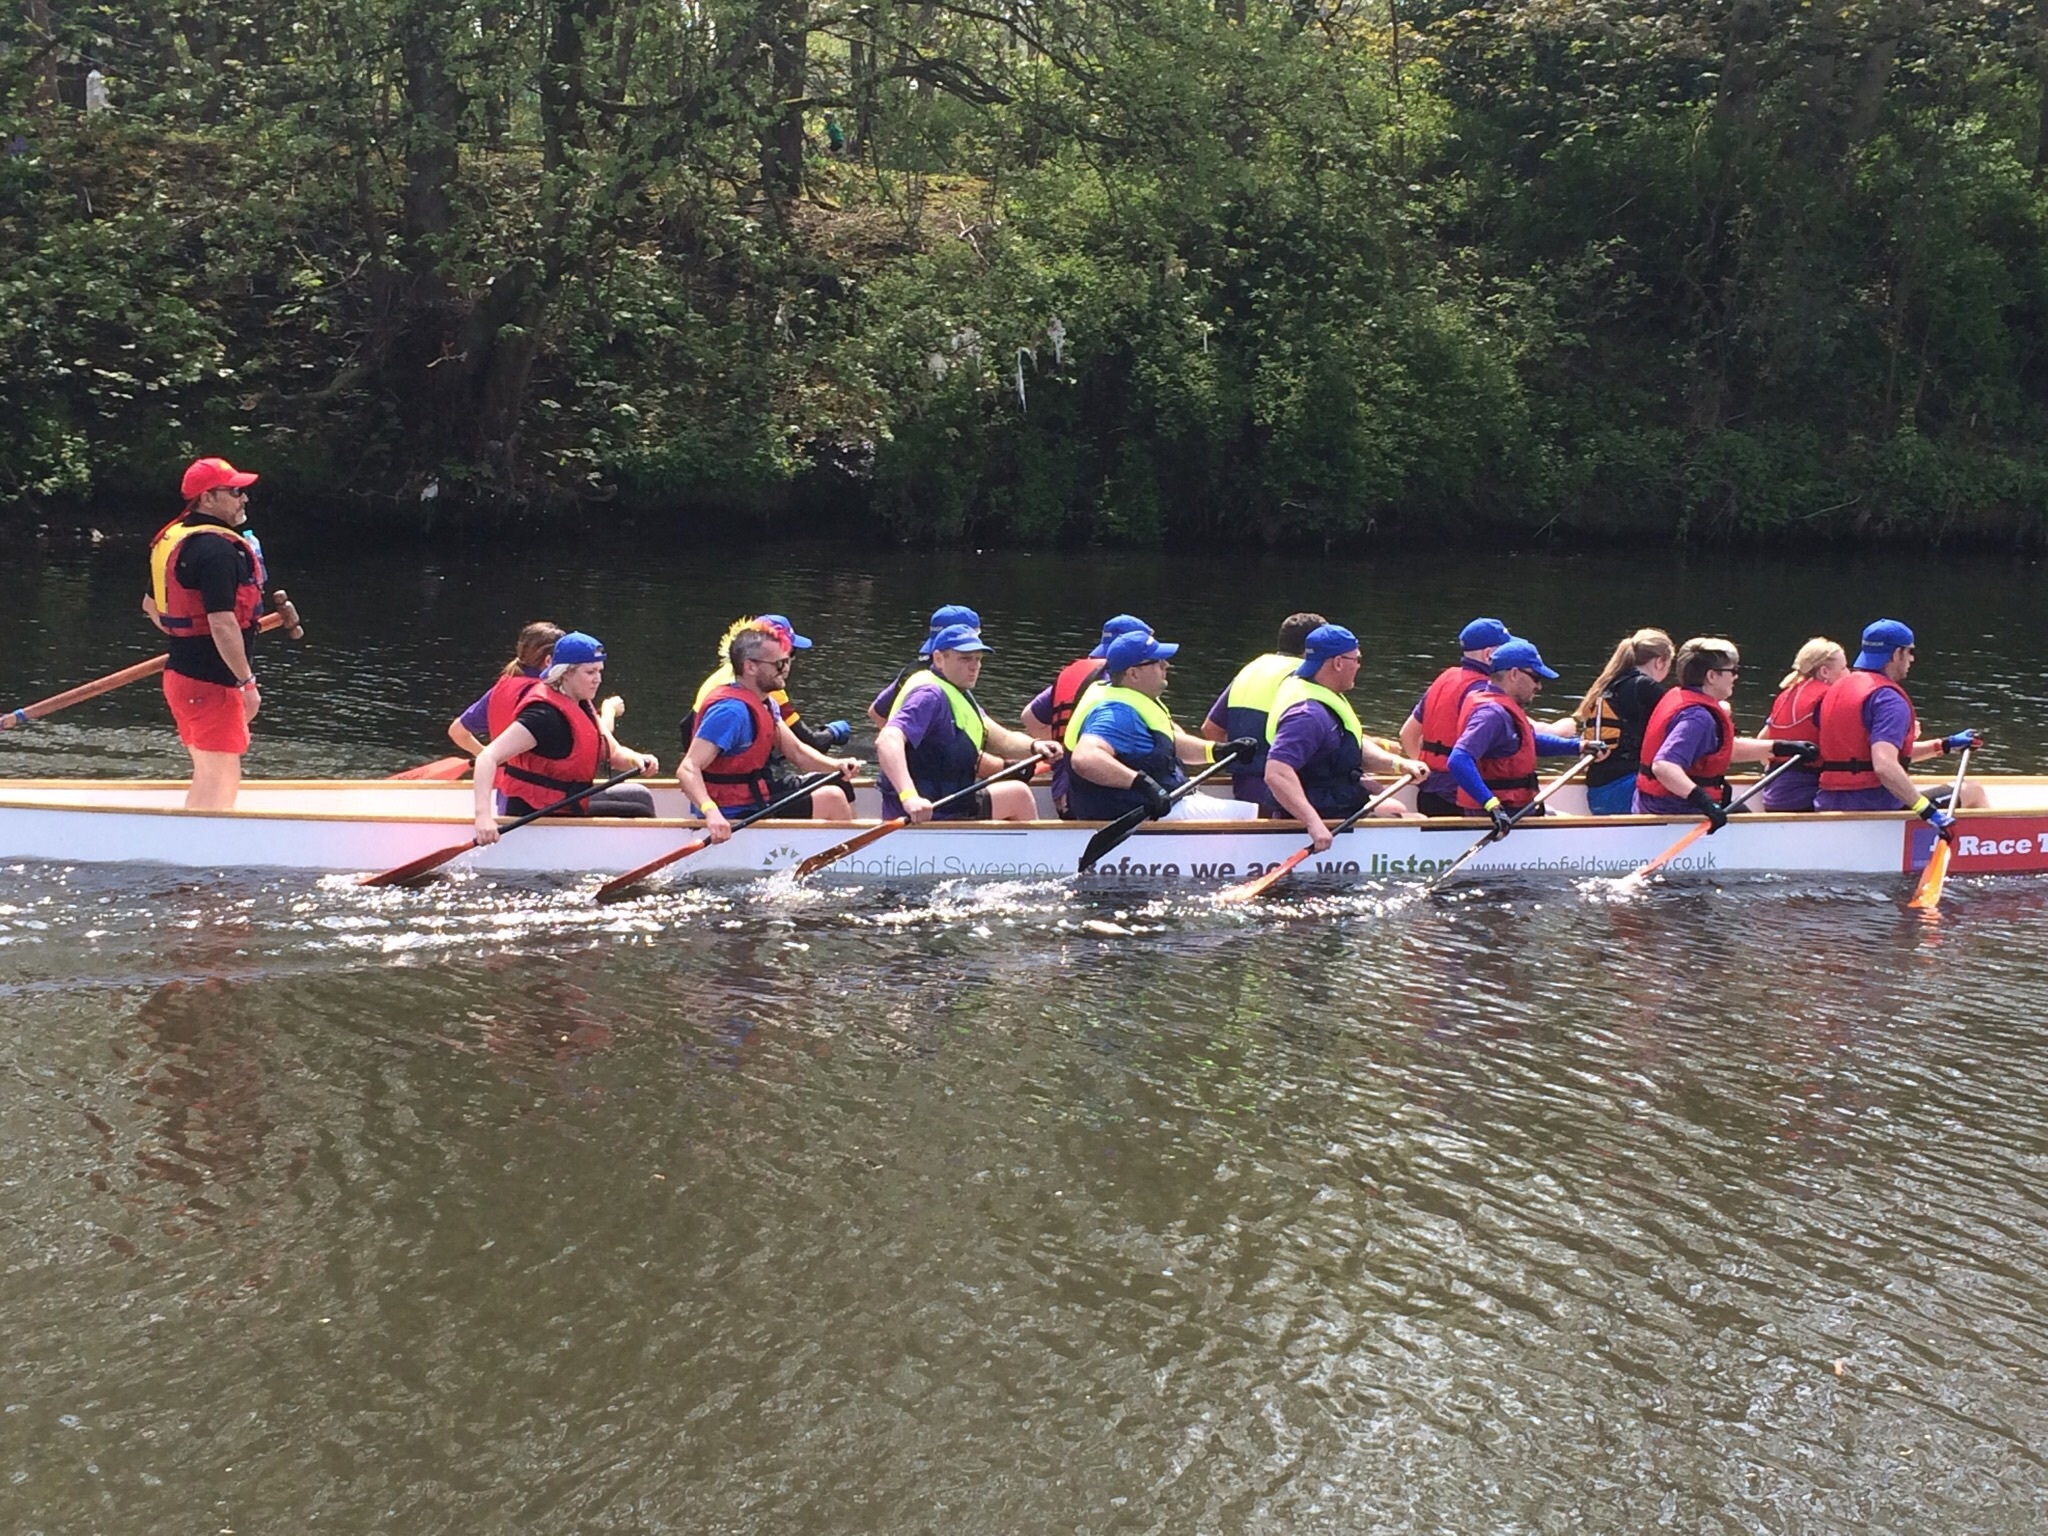 The dragon boat teams negotiated the full length of the Leeds and Liverpool Canal